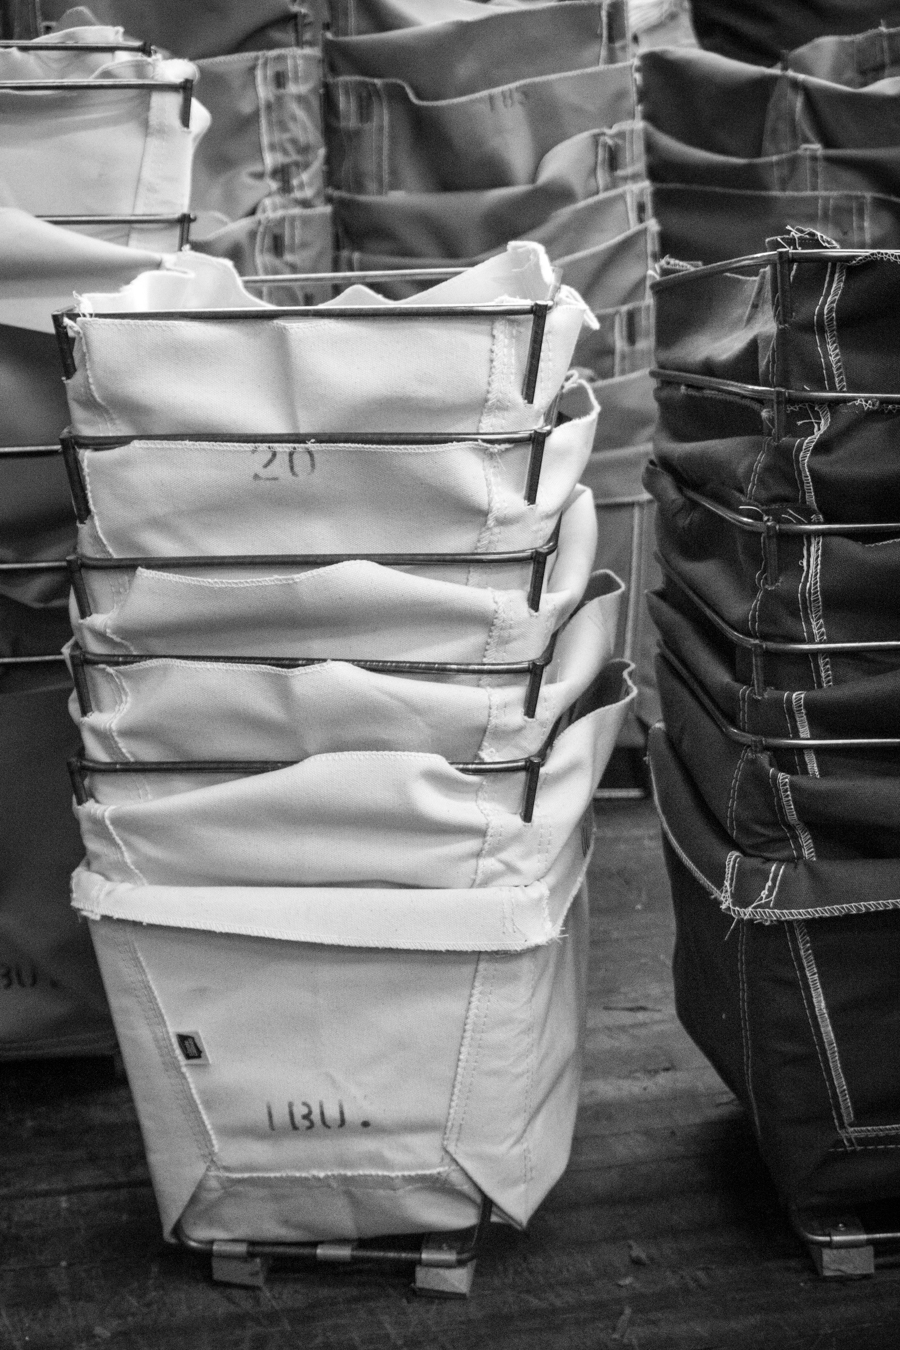 All Steele products are cut, sewn, welded and assembled by hand in Chelsea, MA.